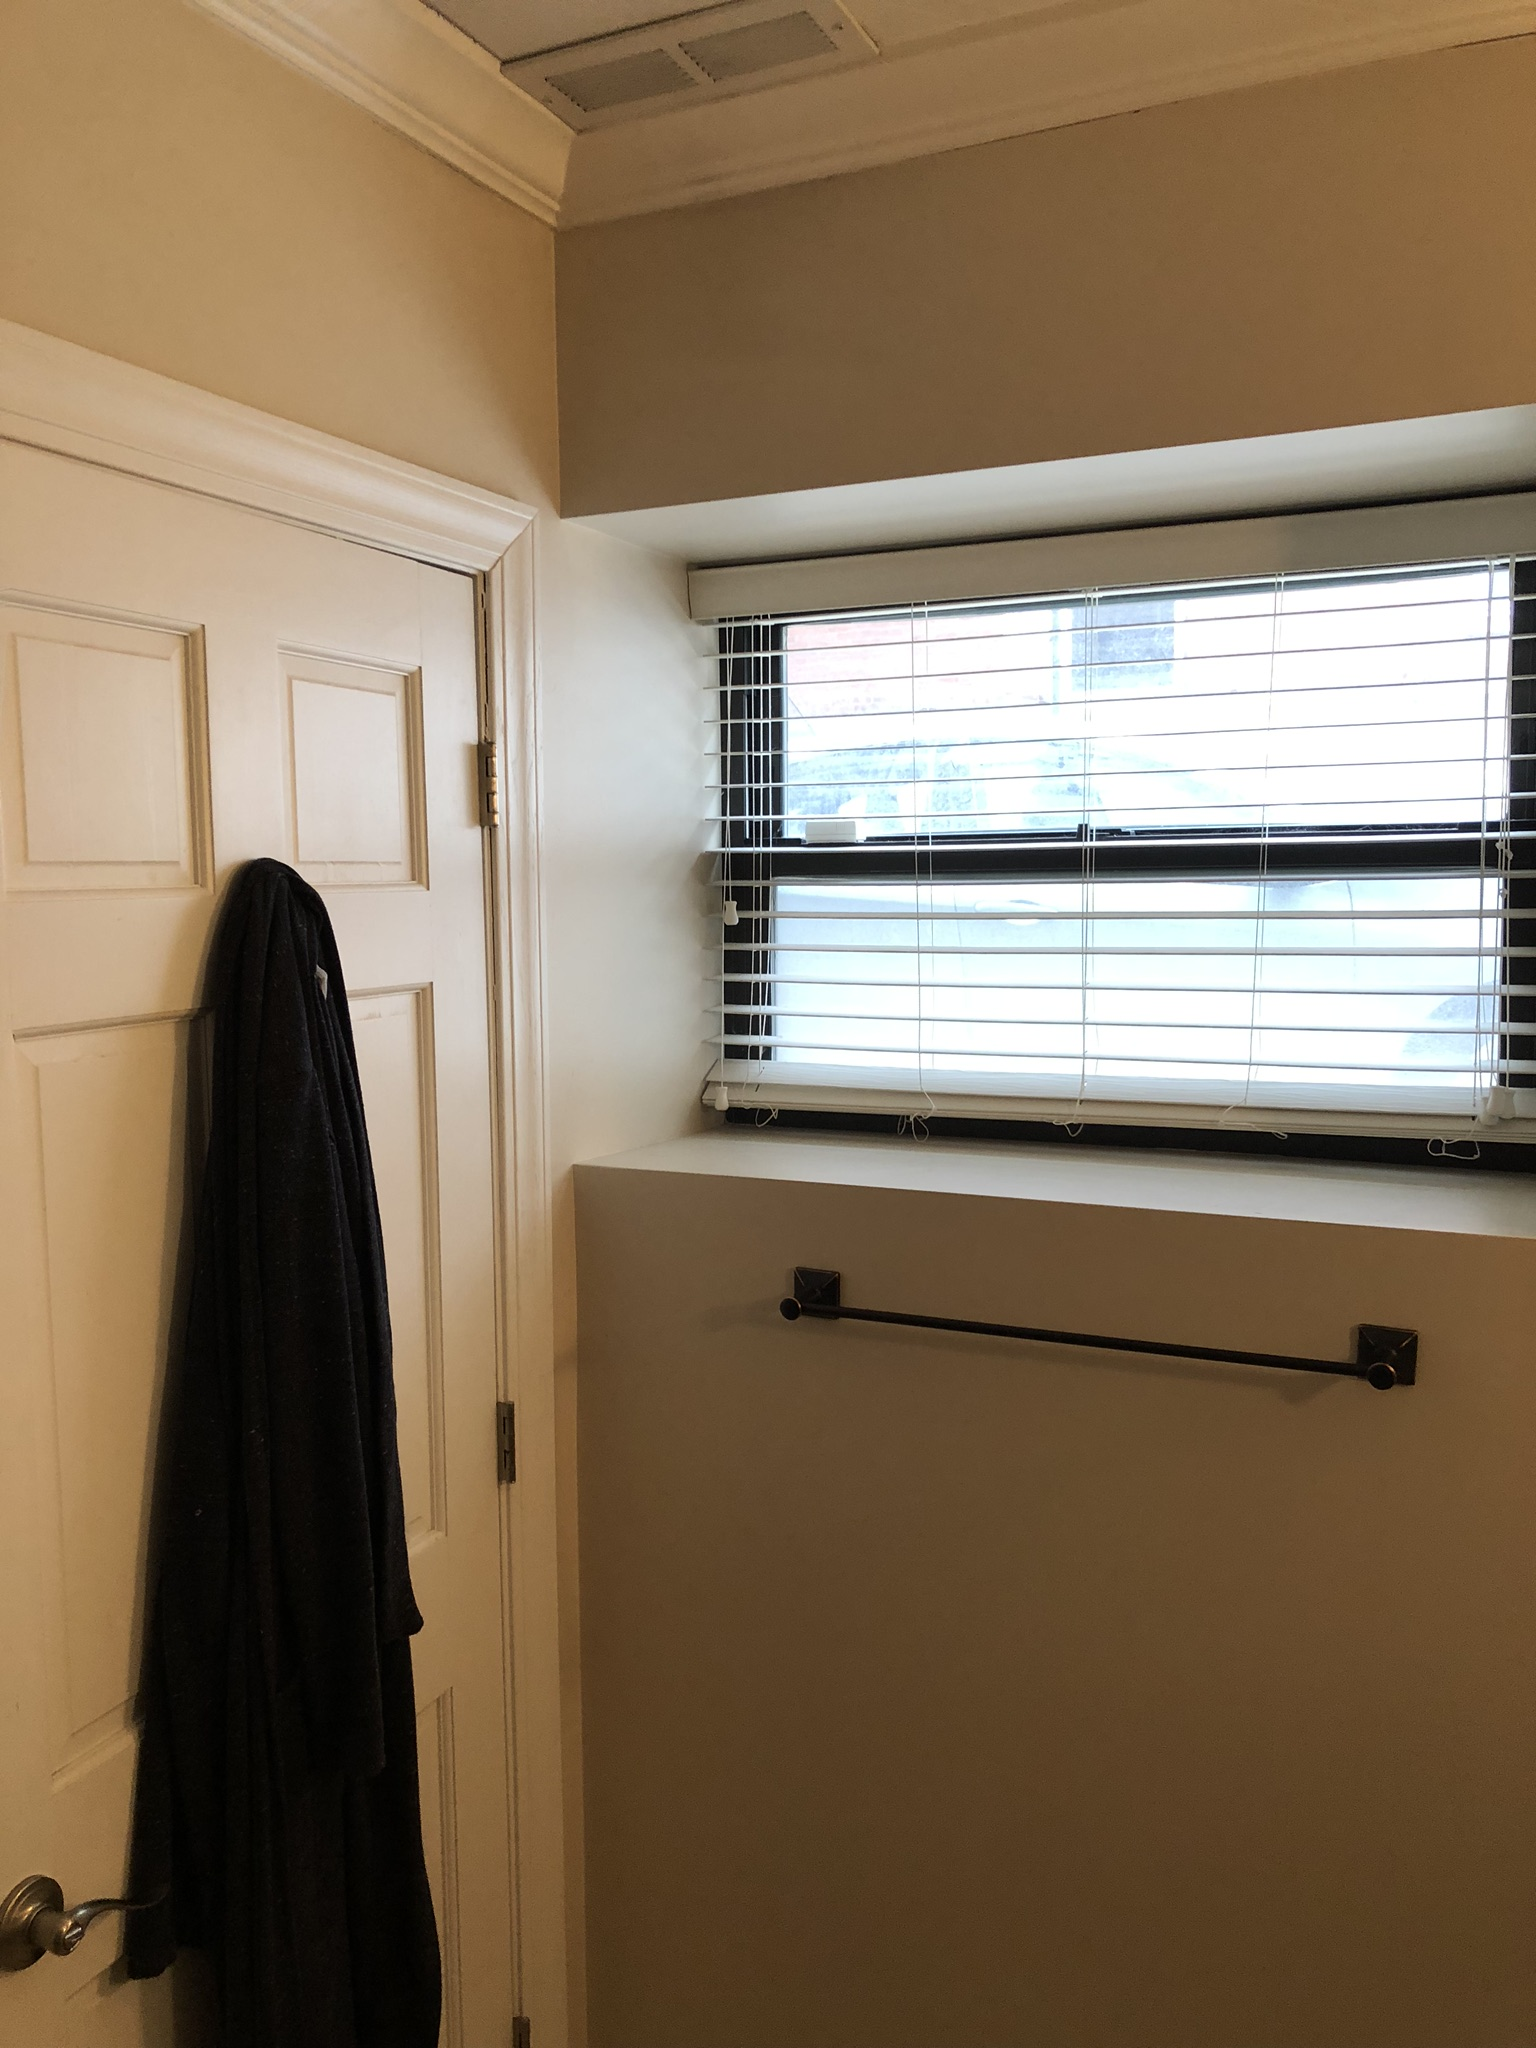 And finally, the window cut-out with blinds that just doesn't work. We have some ideas…